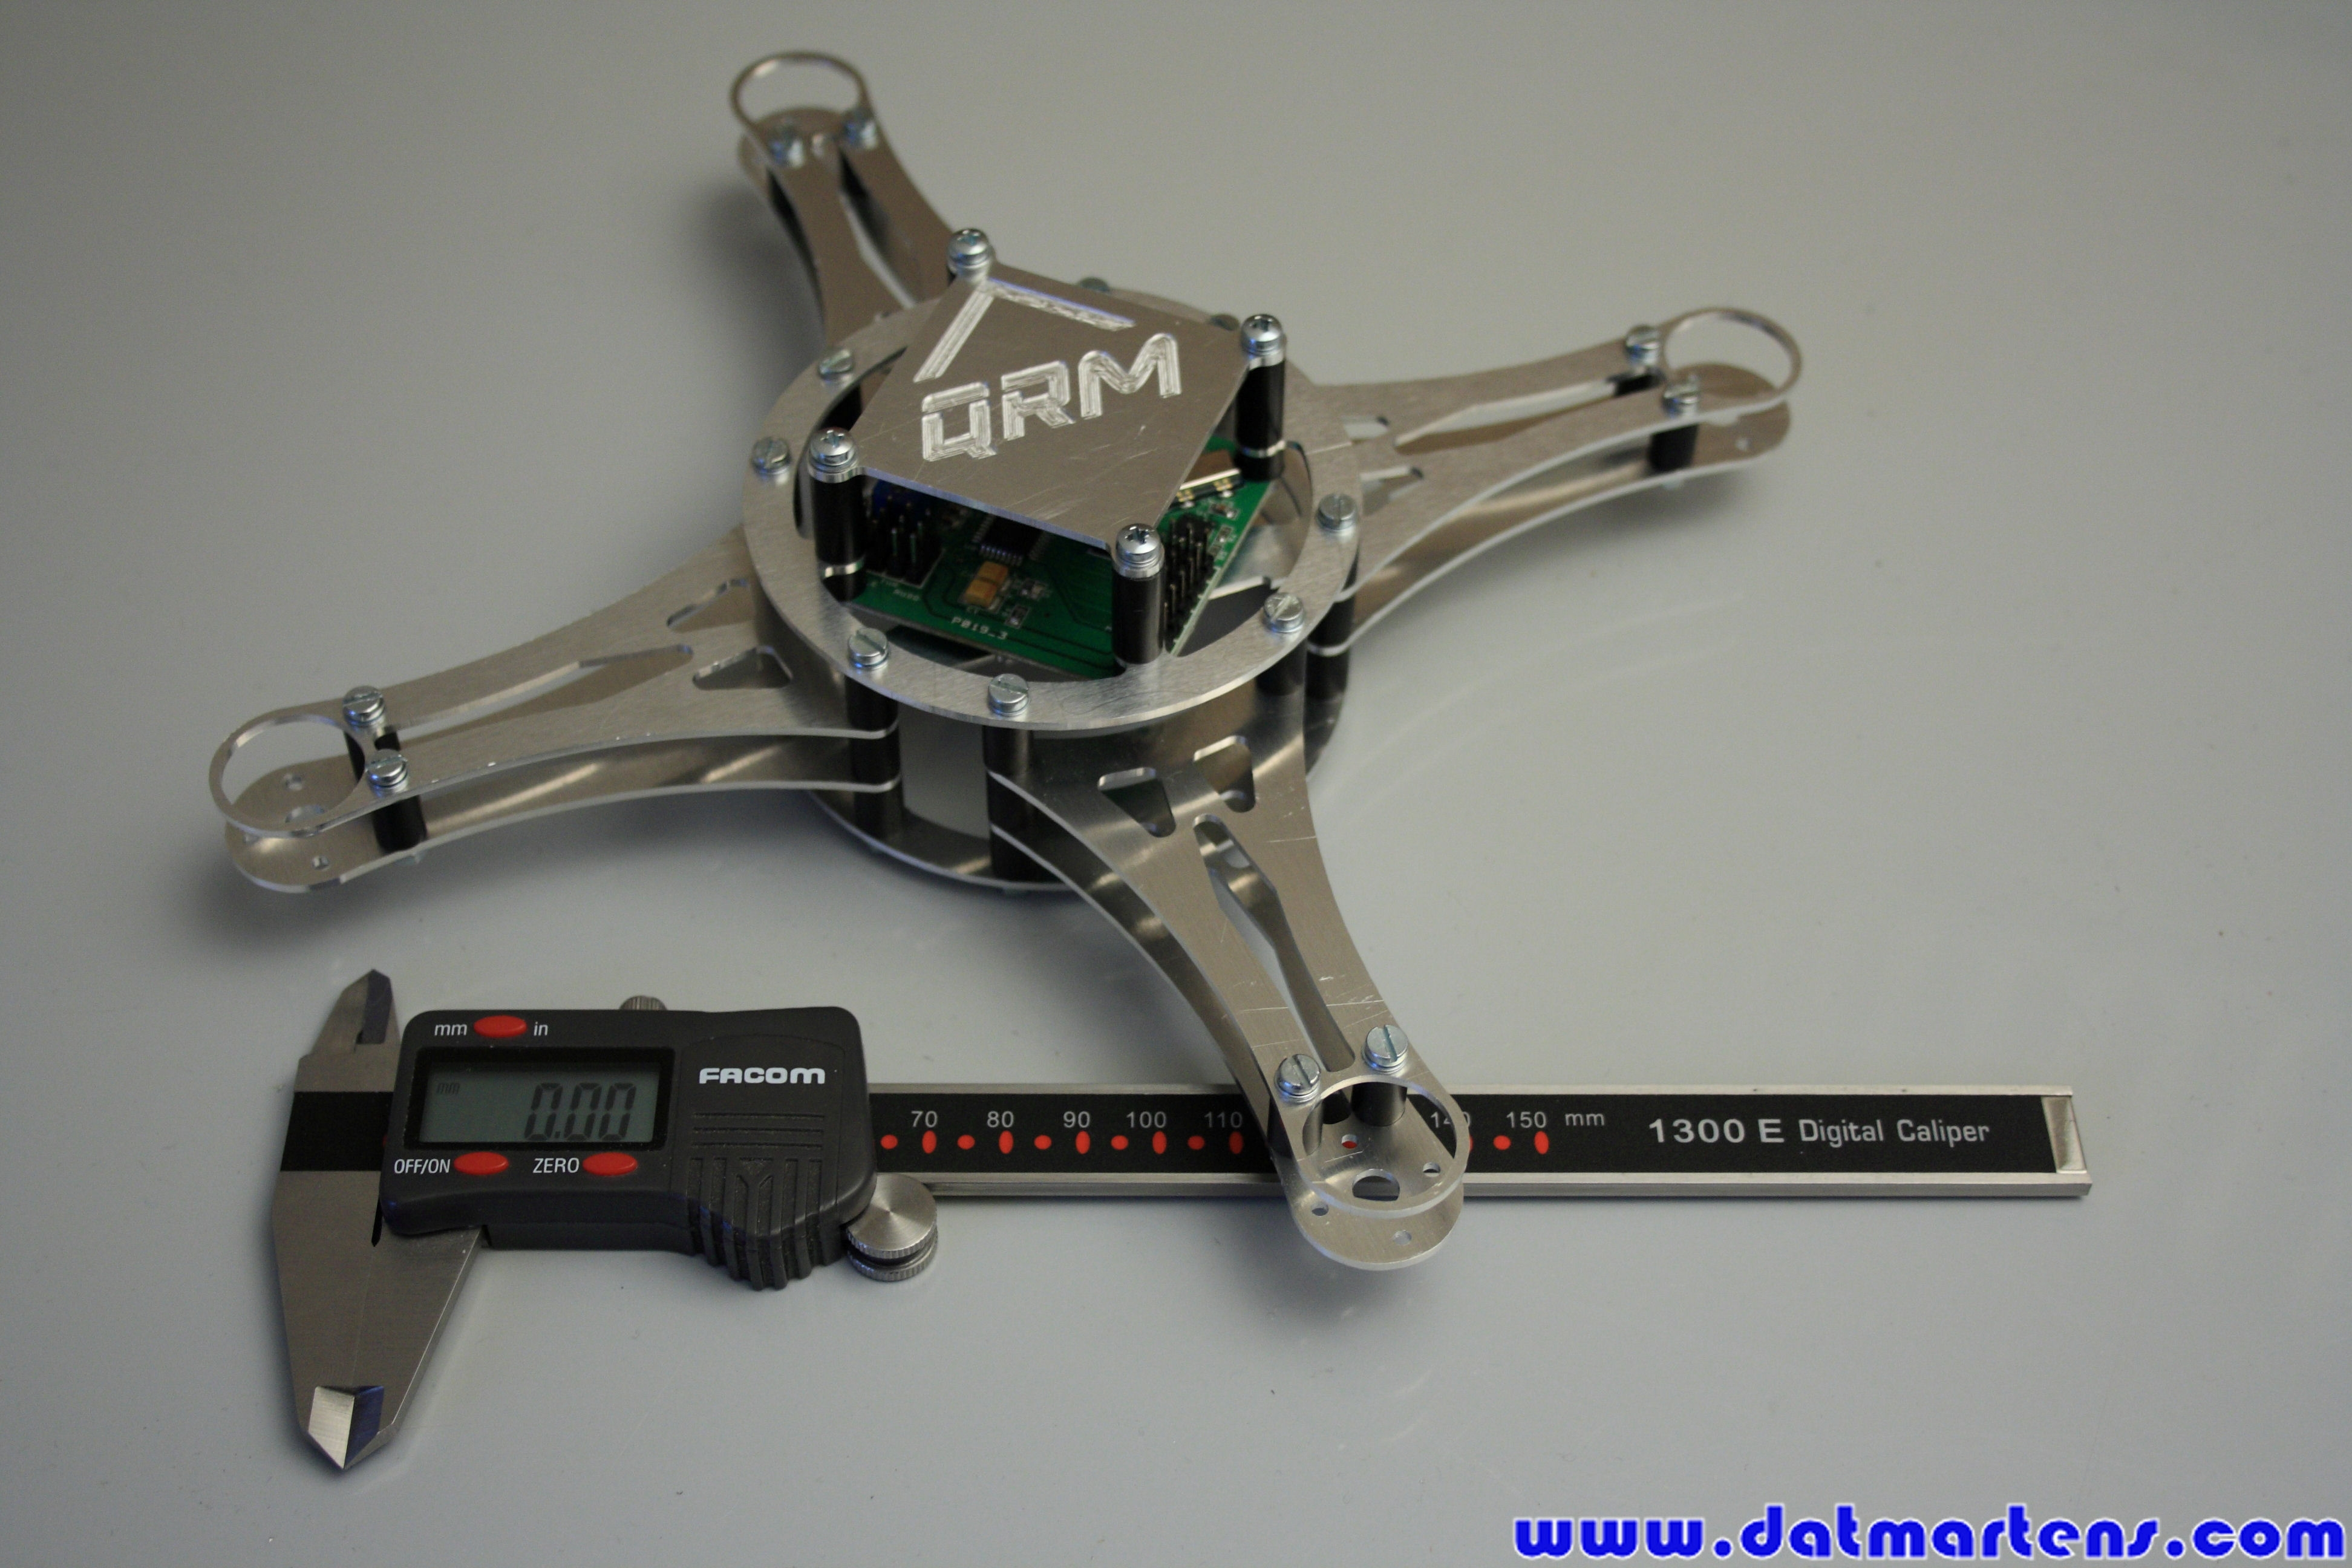 http://gallery.datmartens.com/thumb.php?src=cache%2Falbums%2FProjecten%2FQuadcopter%2FPrototype+2%2FDPP_0161.JPG&size=450&ratio=OAR&save=1